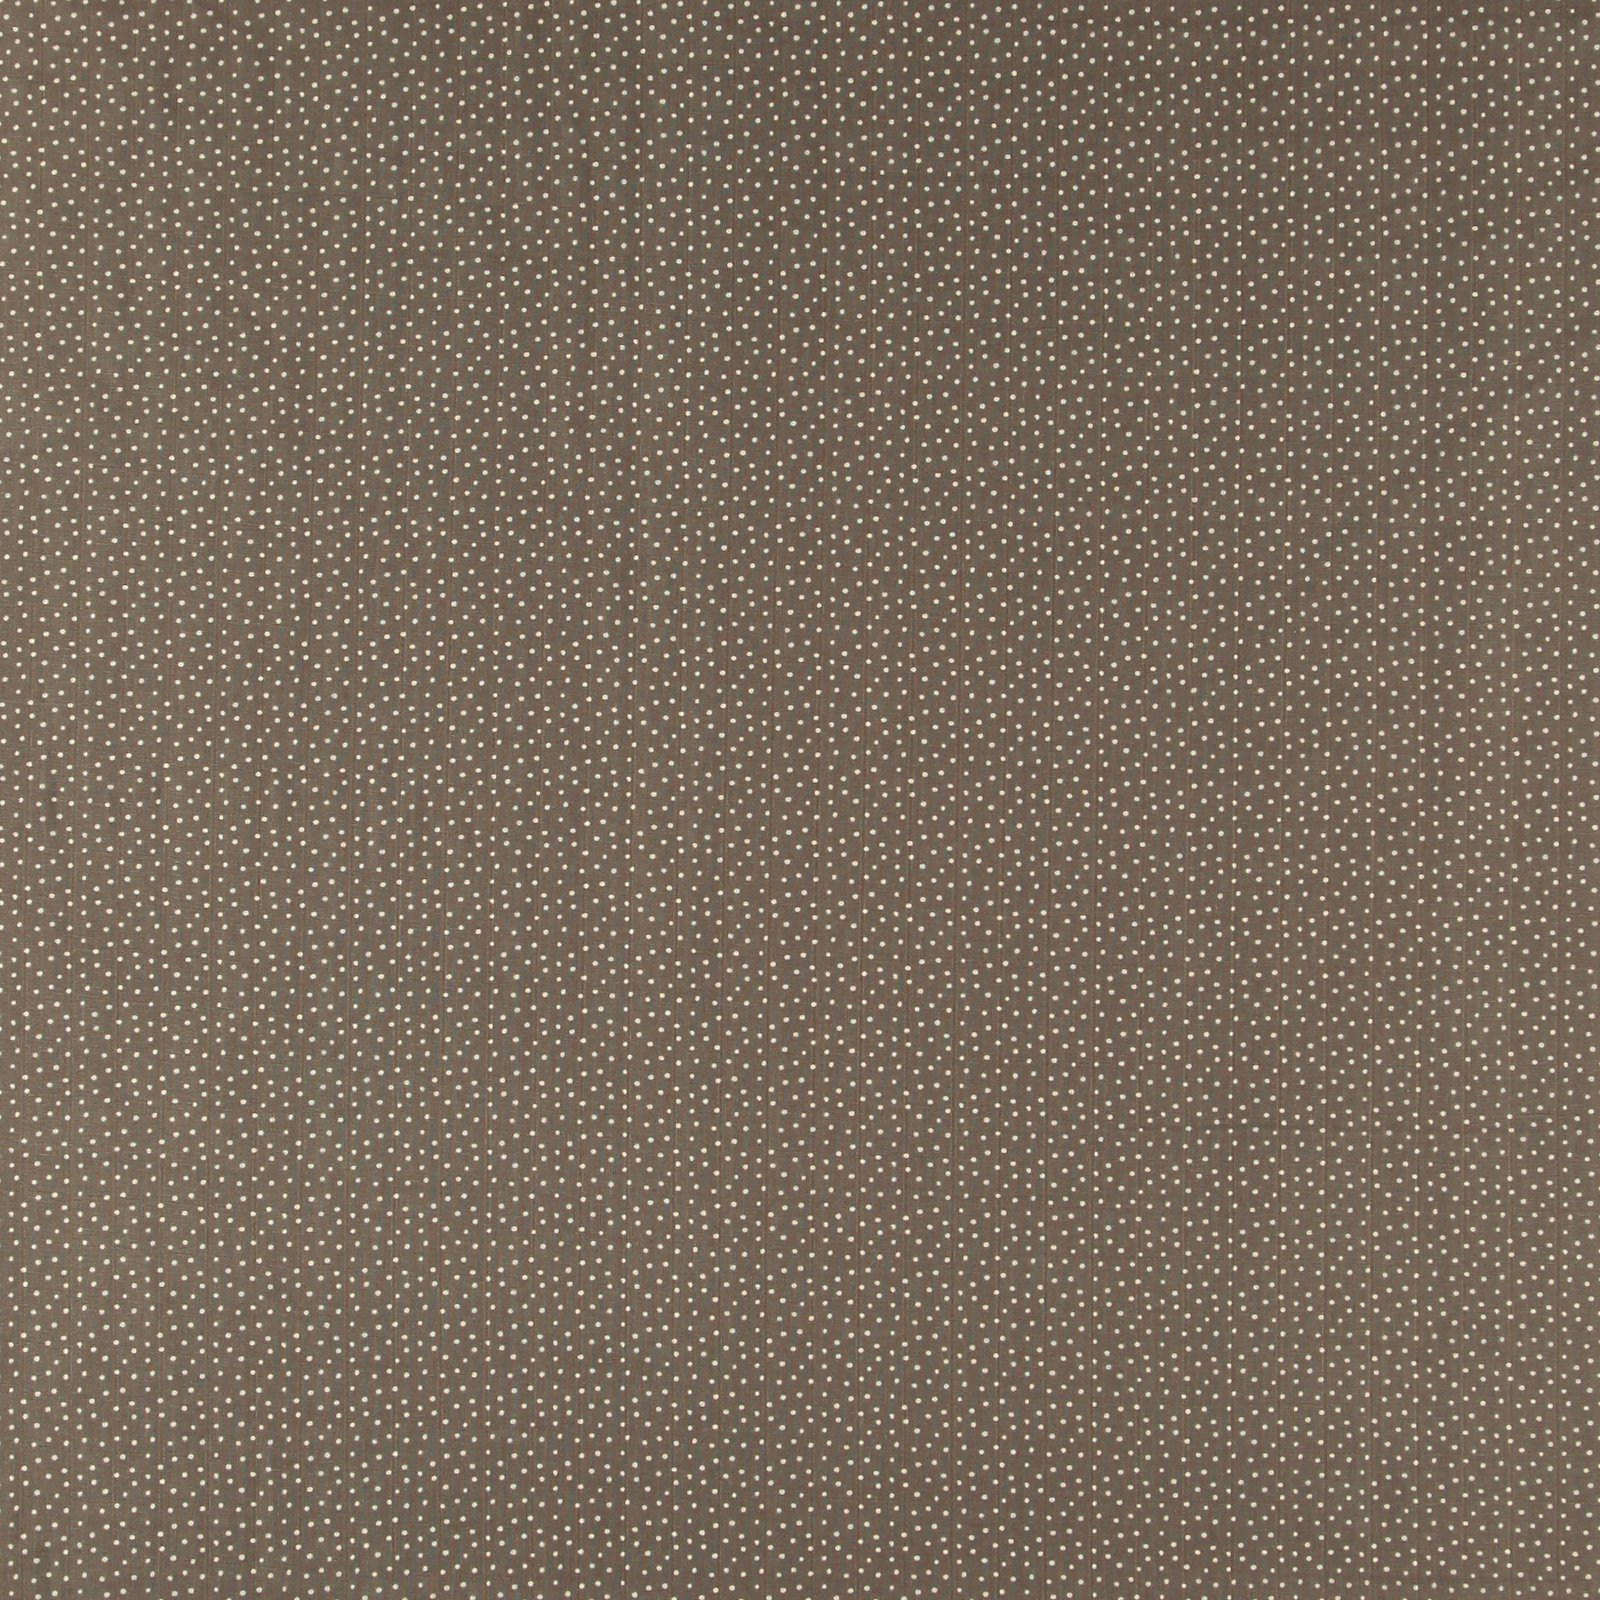 Muslin brown with dots 501833_pack_sp